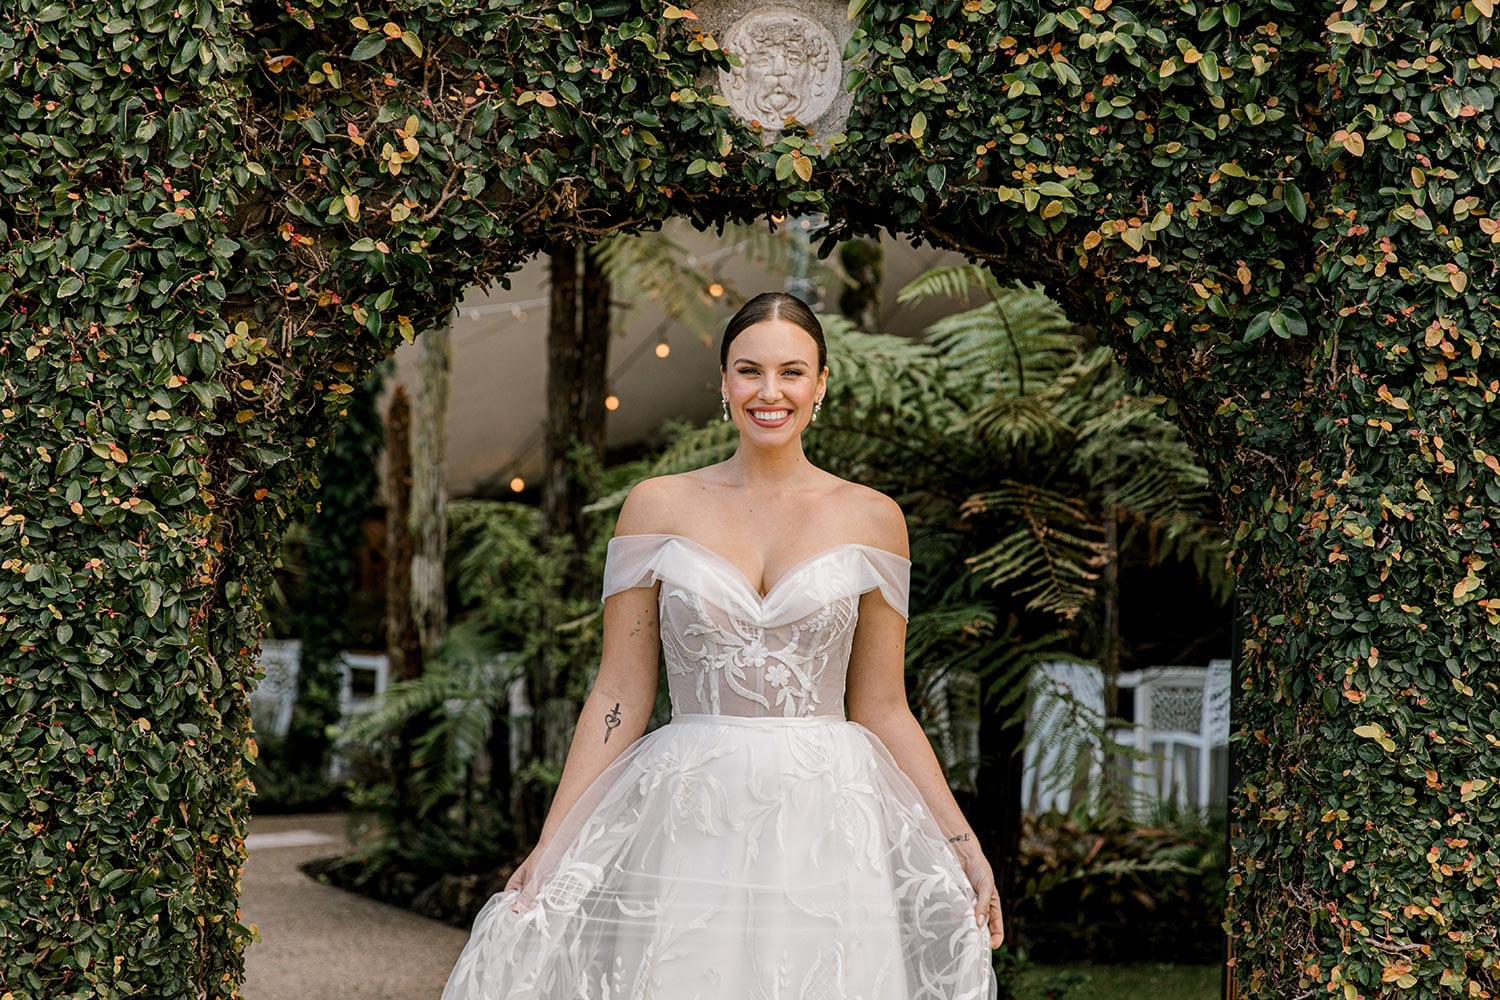 Zoe wedding dress by Vinka Design - a romantic & dreamy off-shoulder gown with a structured, boned bodice, a full lace & tulle skirt. Semi-sheer bodice with tulle off-shoulder detailing and satin belt. Worn in garden archway, landscape.